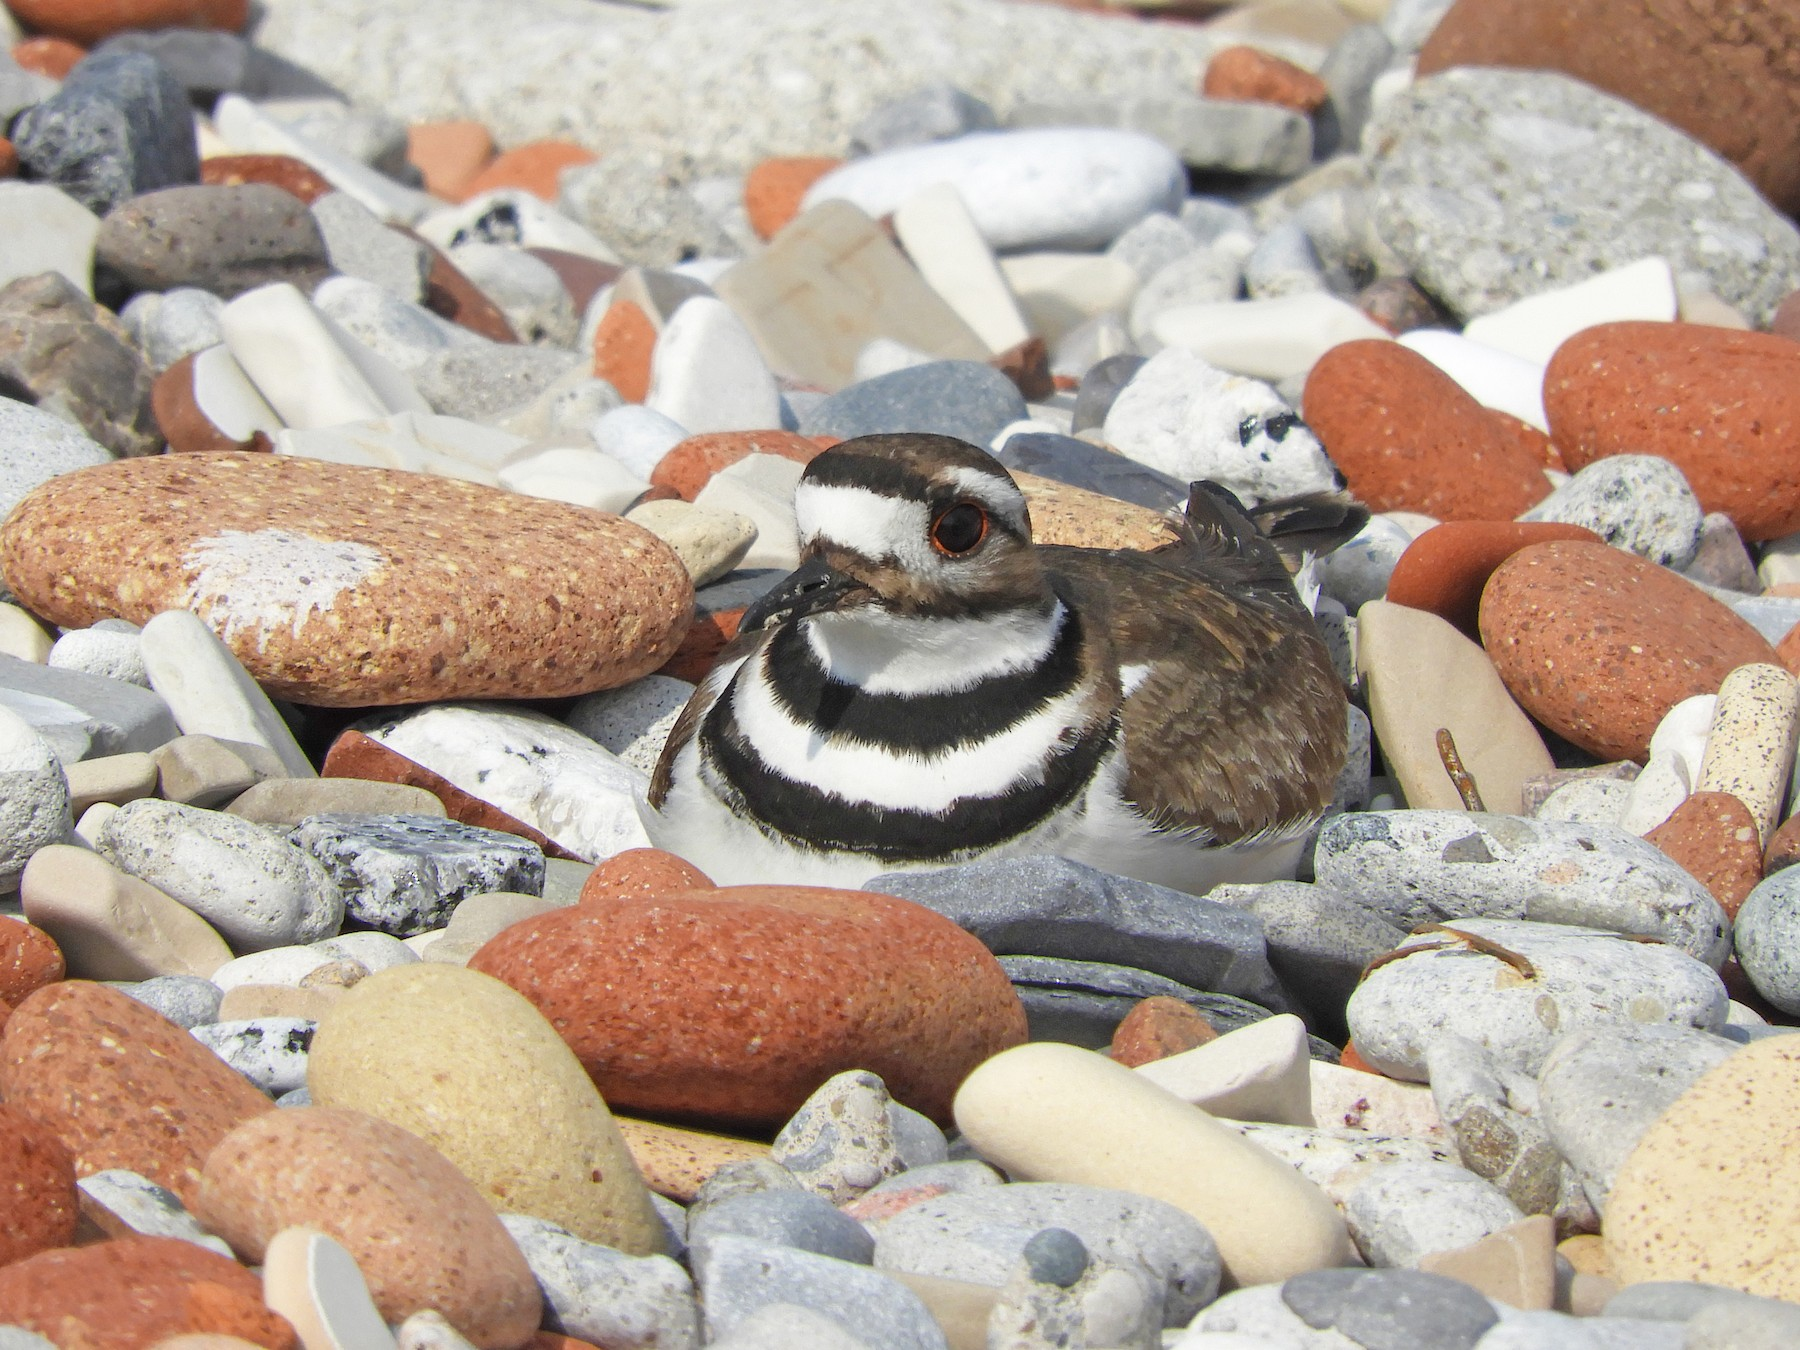 Killdeer - Kai Sheffield